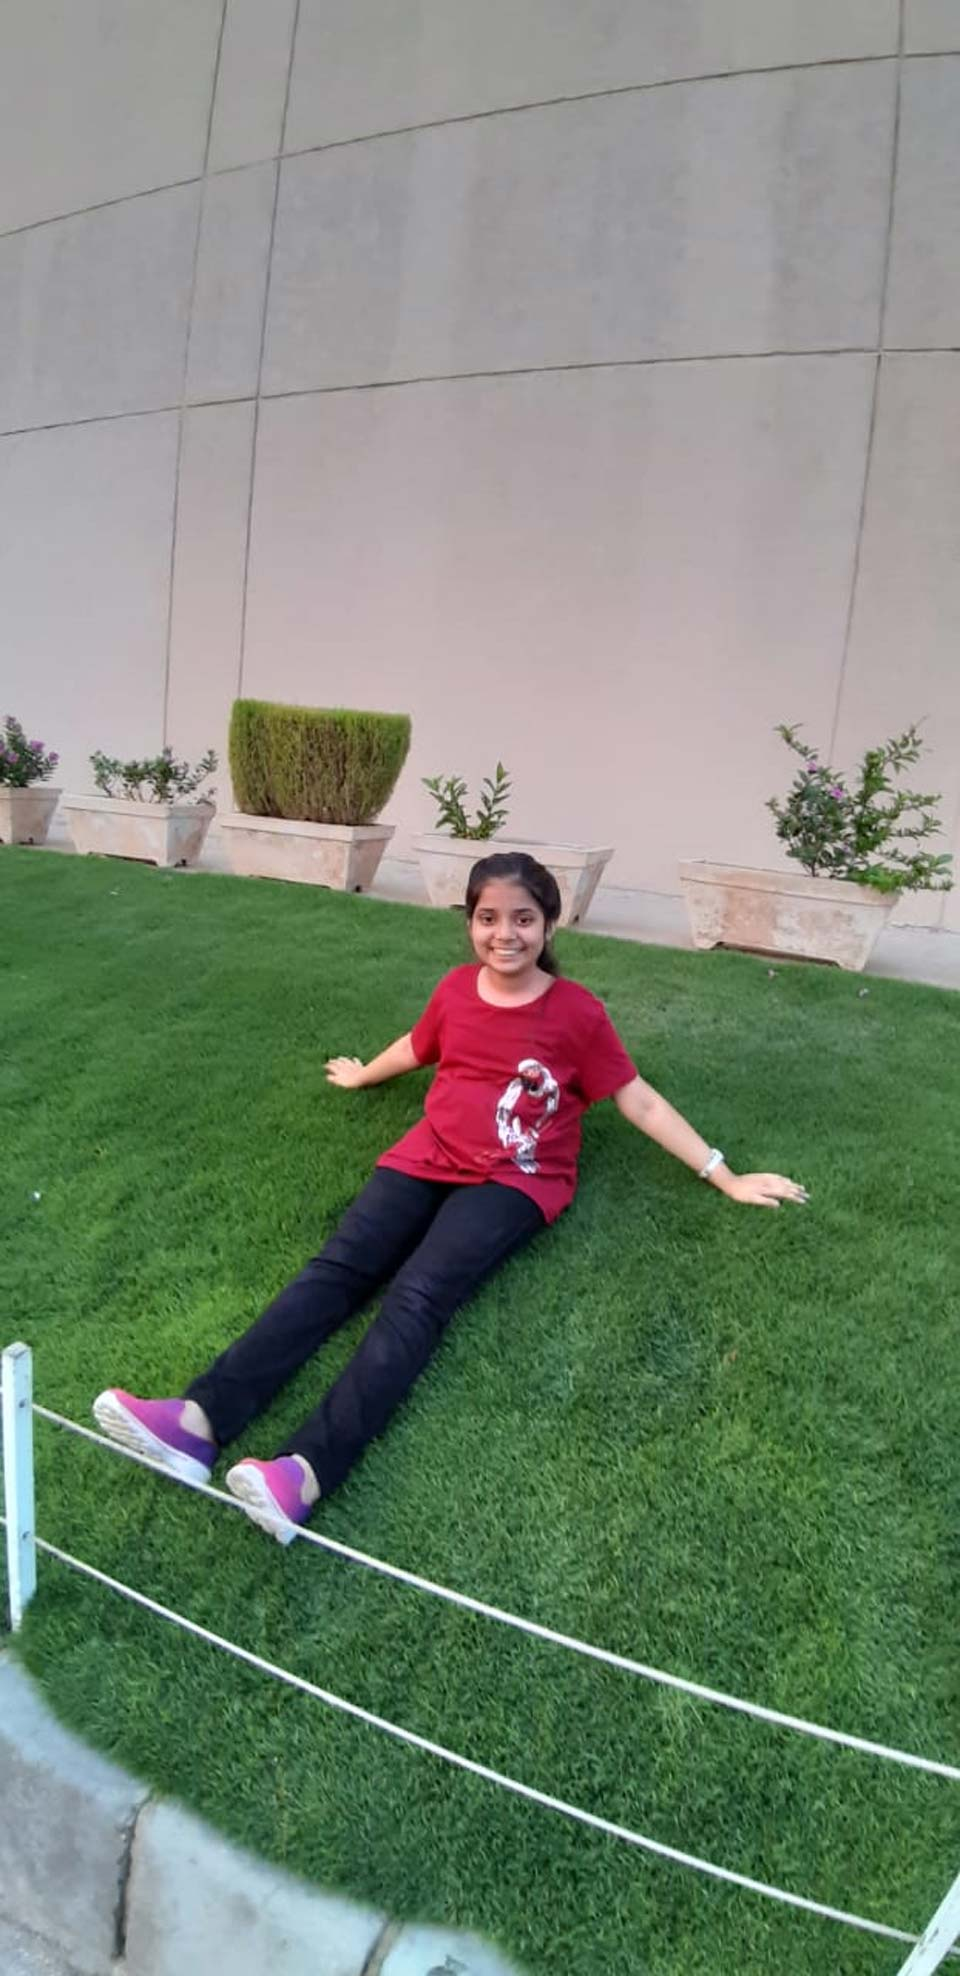 Zara Imran is enjoying the nice grass outside the Arena Club